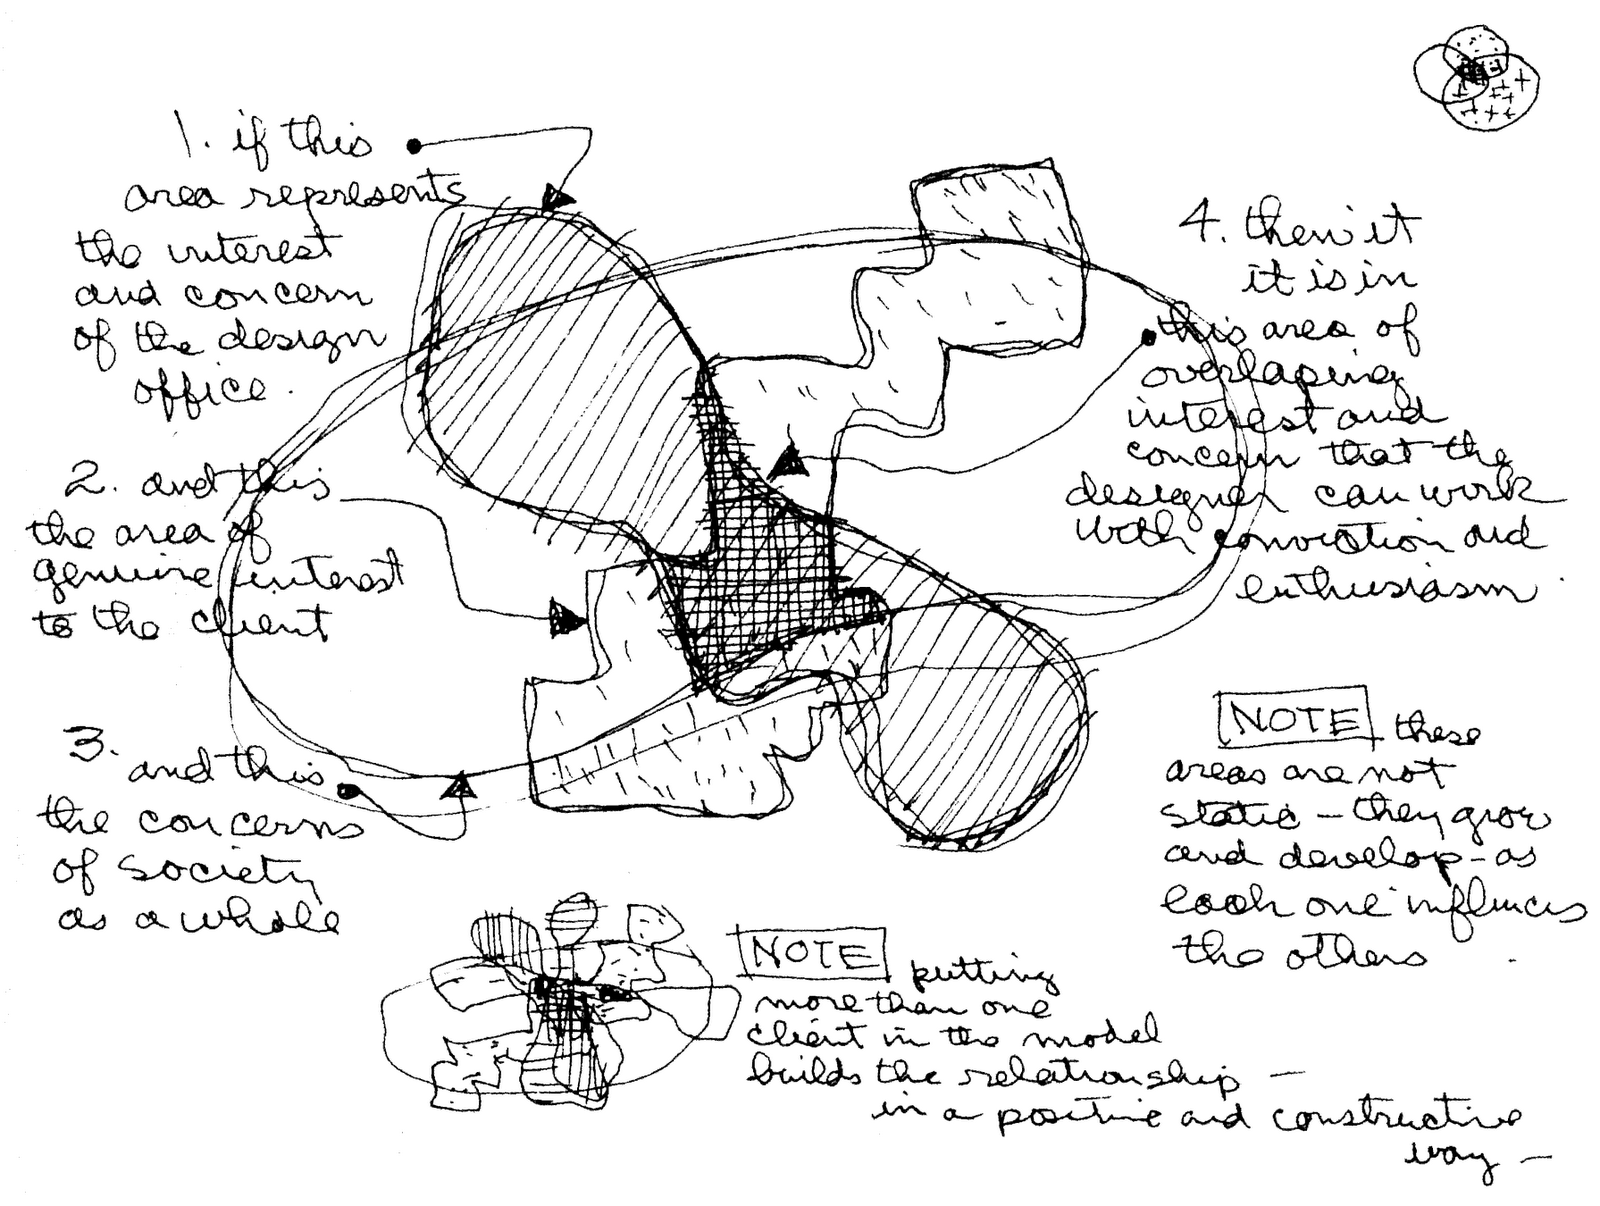 Architecture Design Process the charles eames design diagram | praxis: bold as love #design